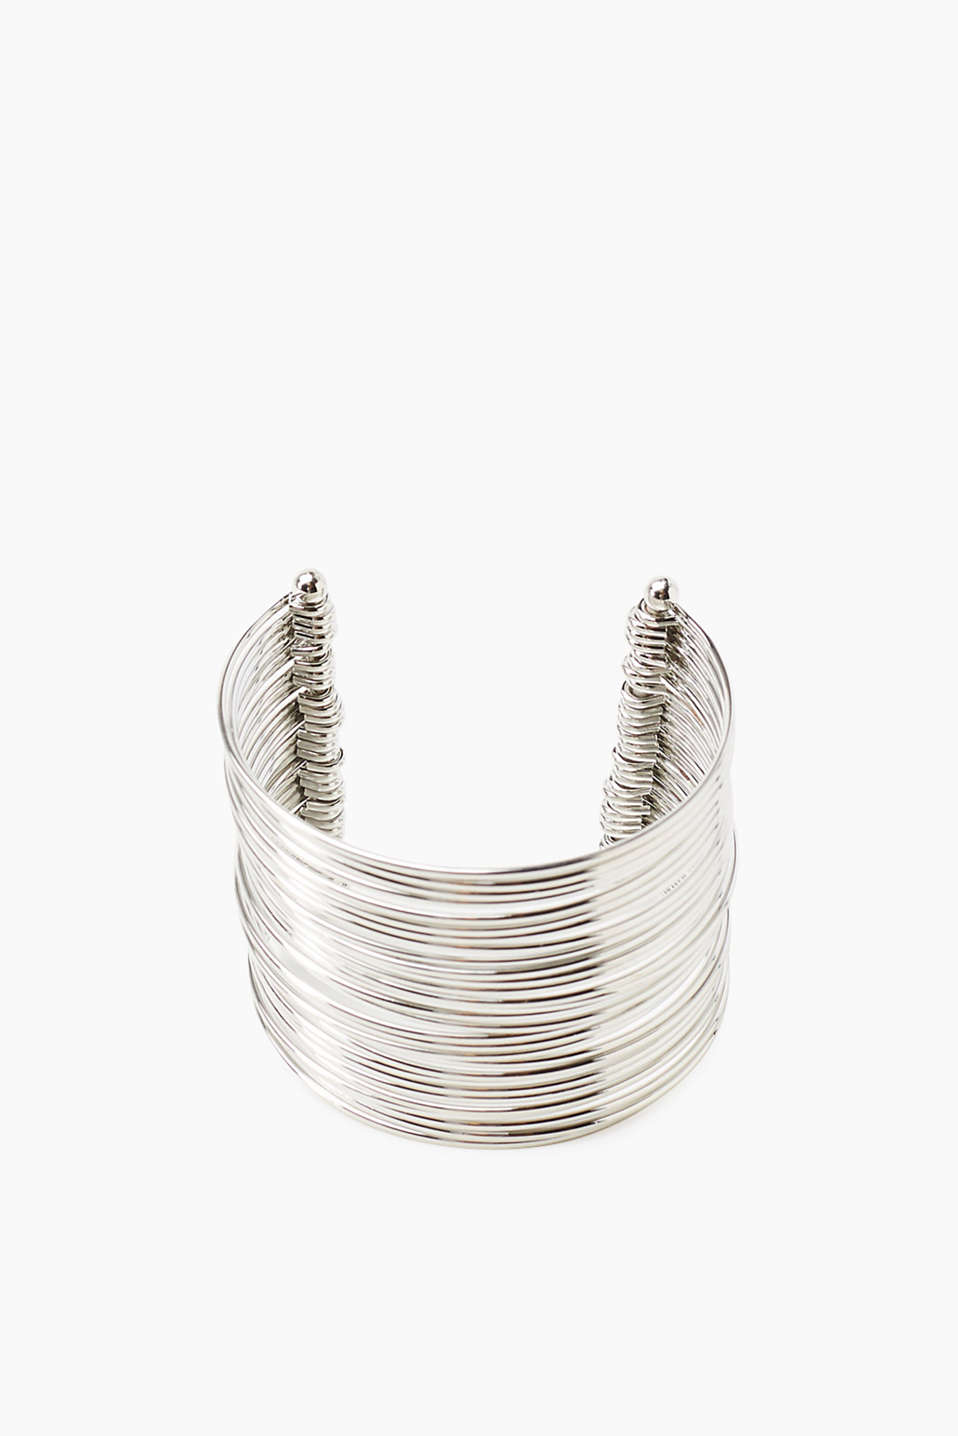 Esprit - Metal bangle with many rings